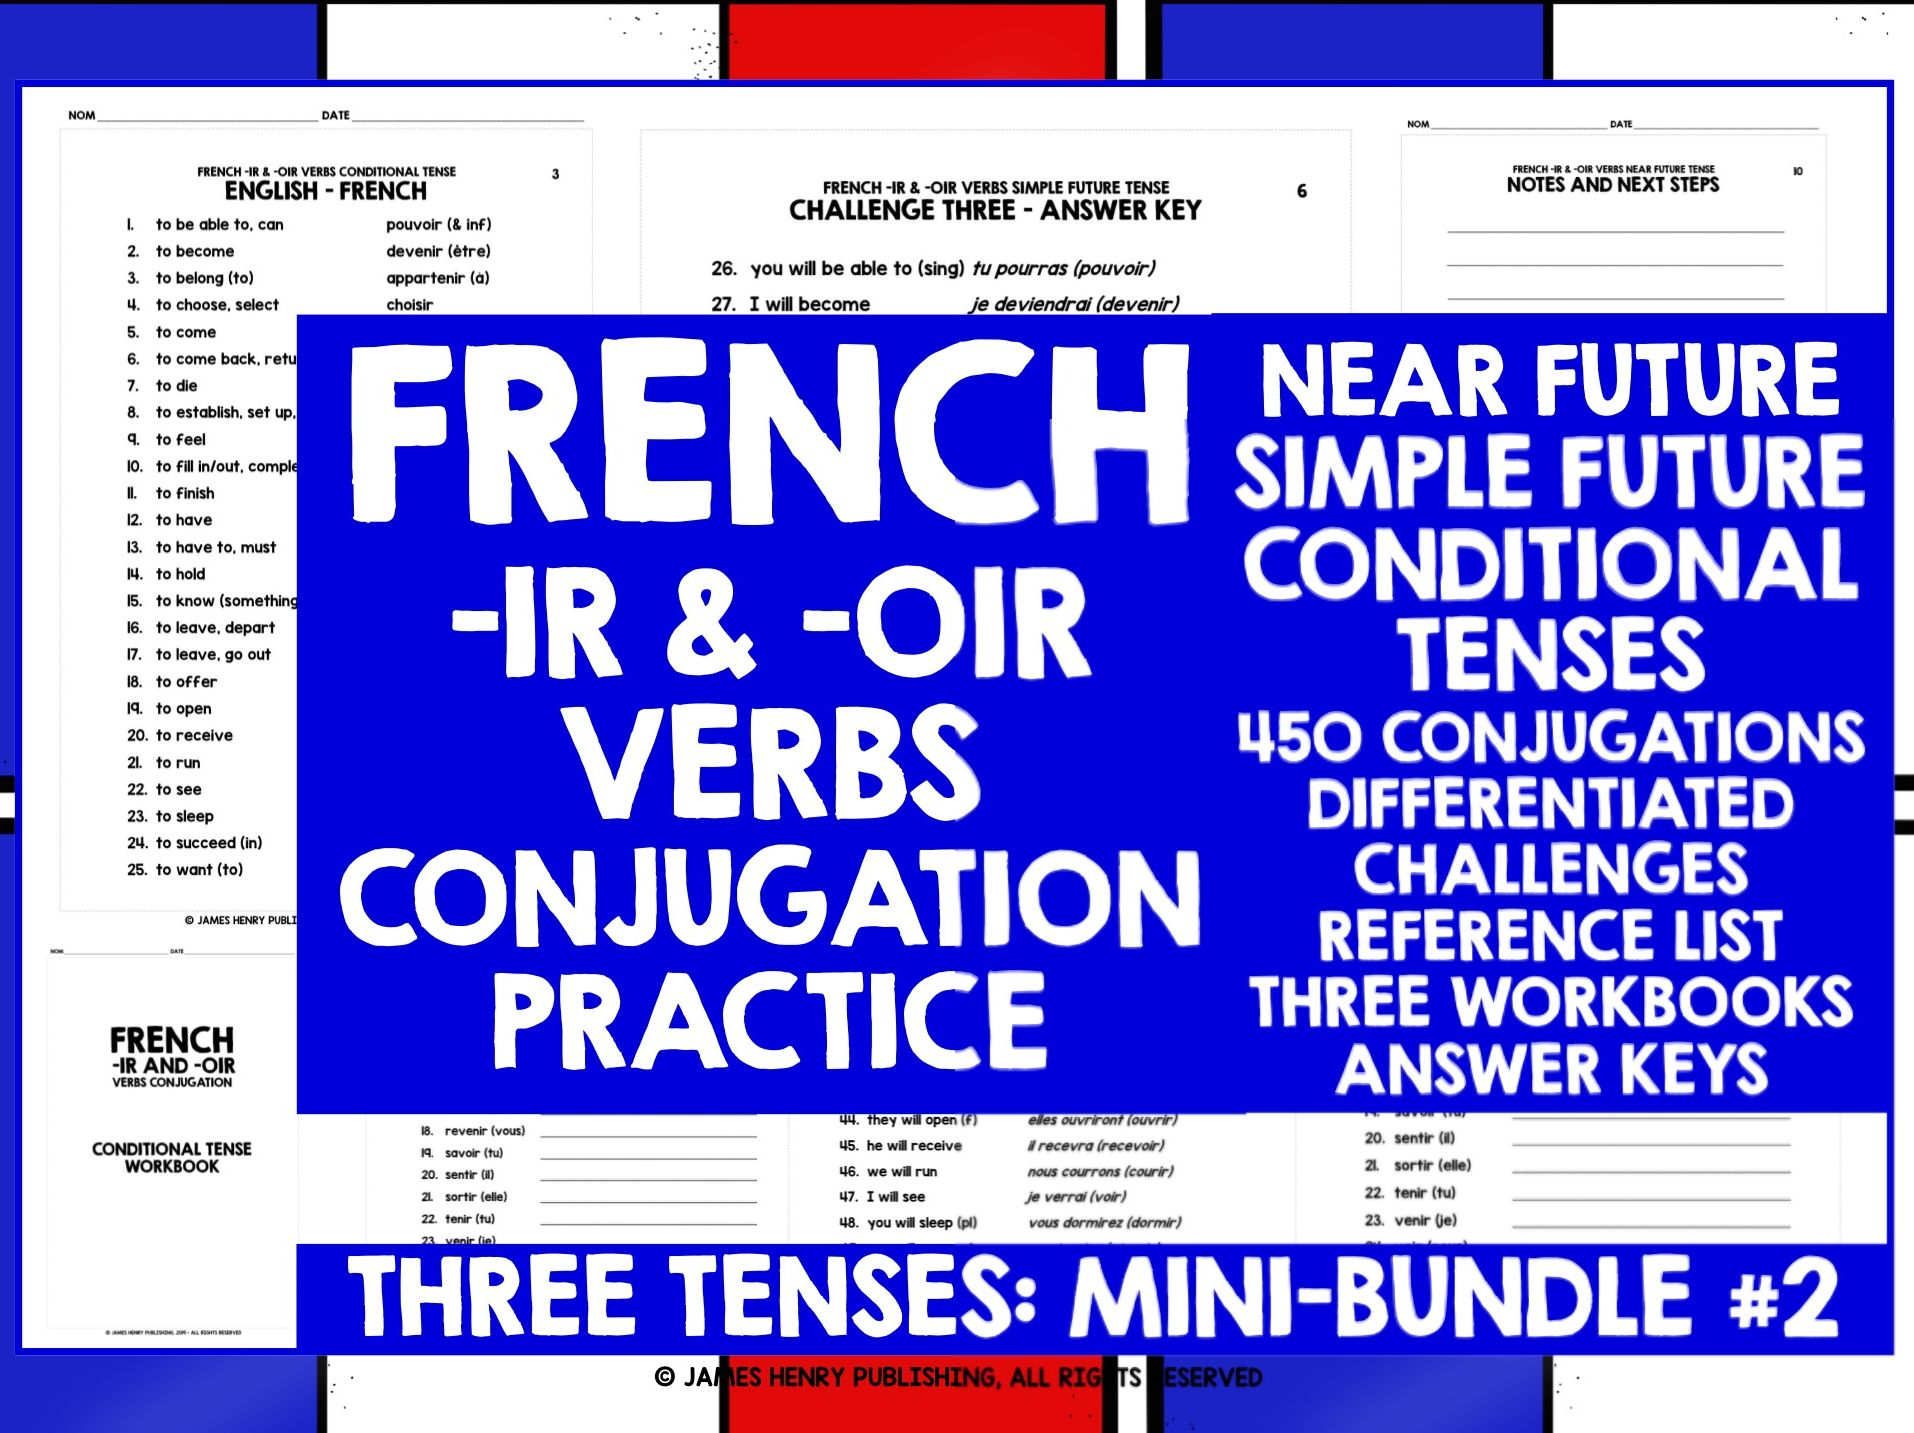 FRENCH -IR VERBS CONJUGATION MINI-BUNDLE #2